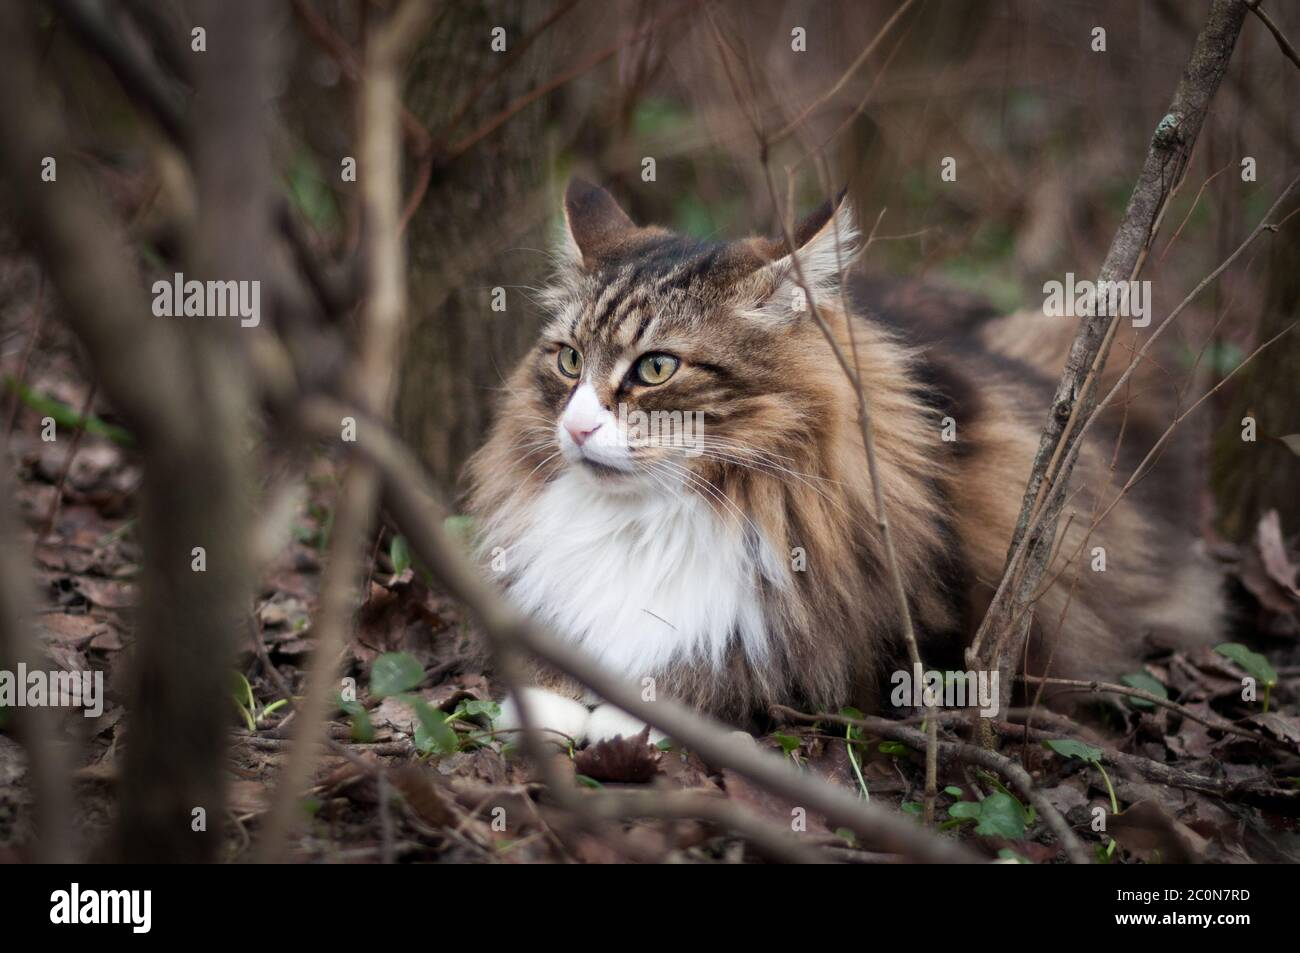 Brindle Cat High Resolution Stock Photography And Images Alamy